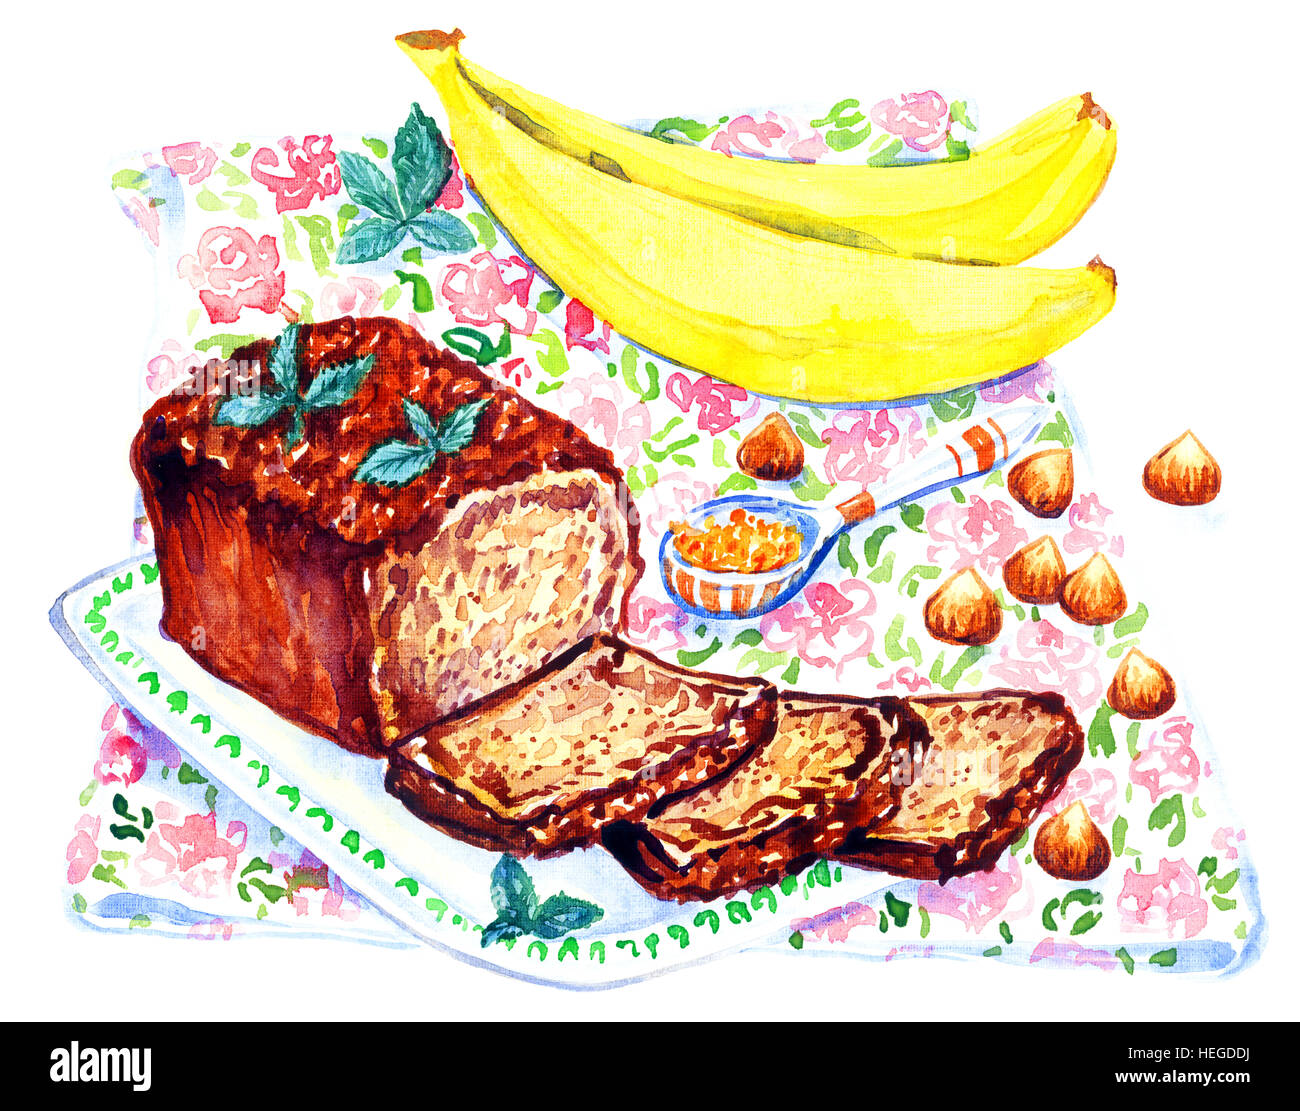 Hand Painted Watercolor Illustration Banana Bread And Ingredients On Stock Photo Alamy